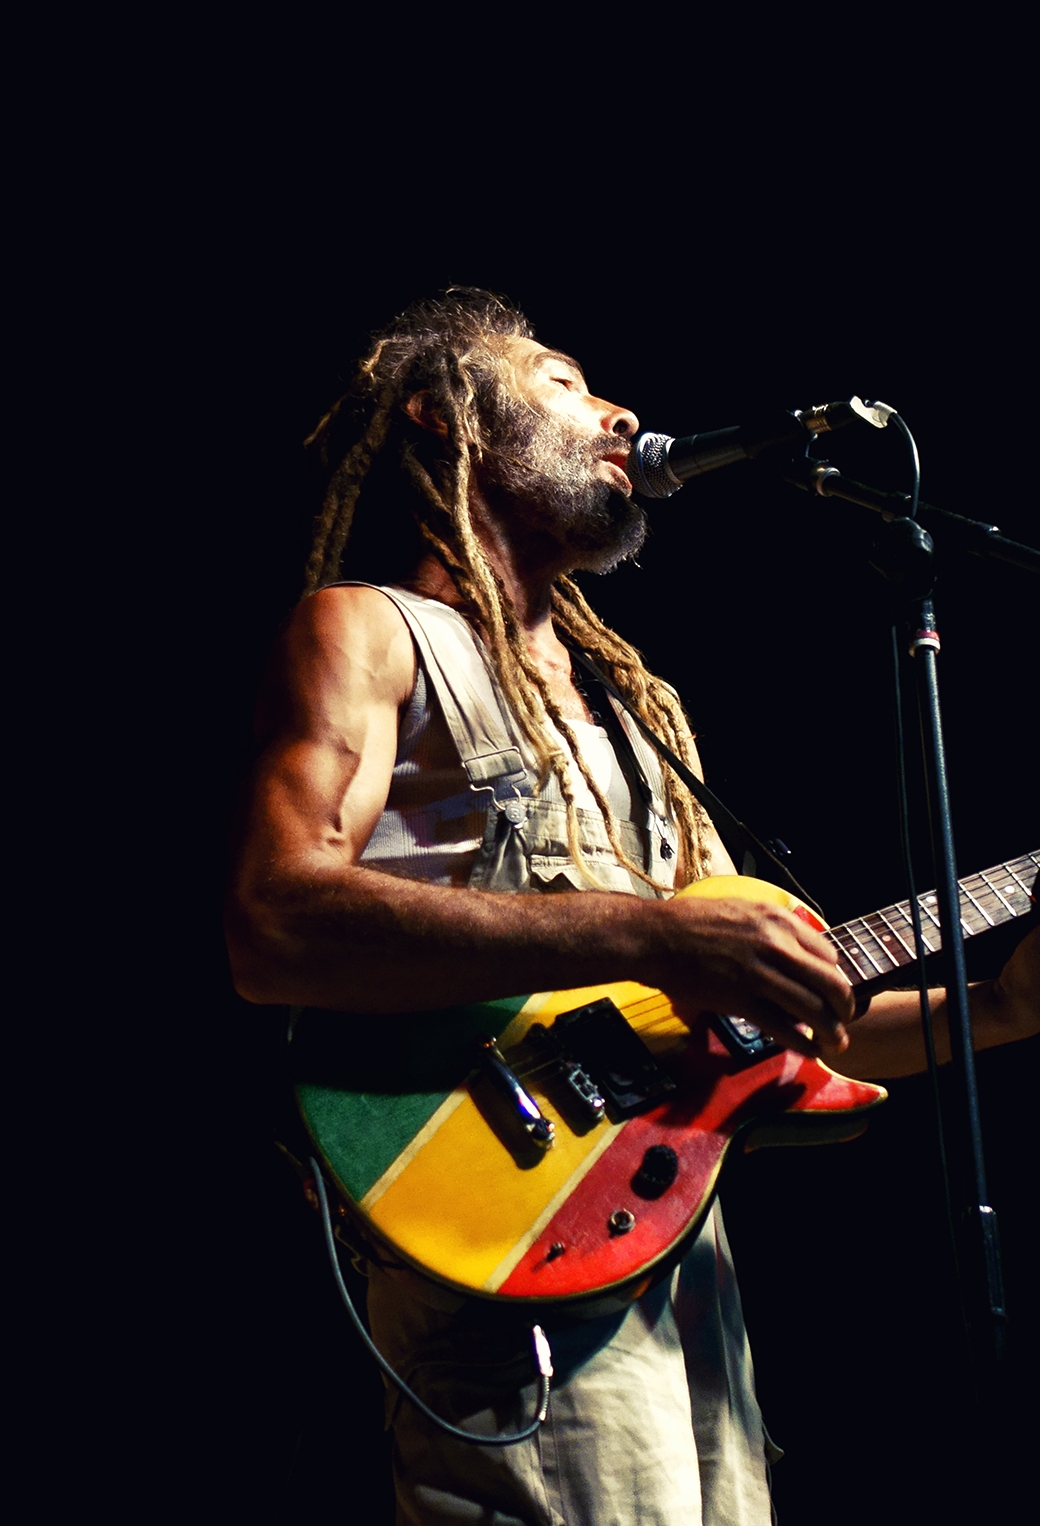 Reggae wallpaper for iphone x 8 7 6 free download on 3wallpapers - Reggae girl wallpaper ...